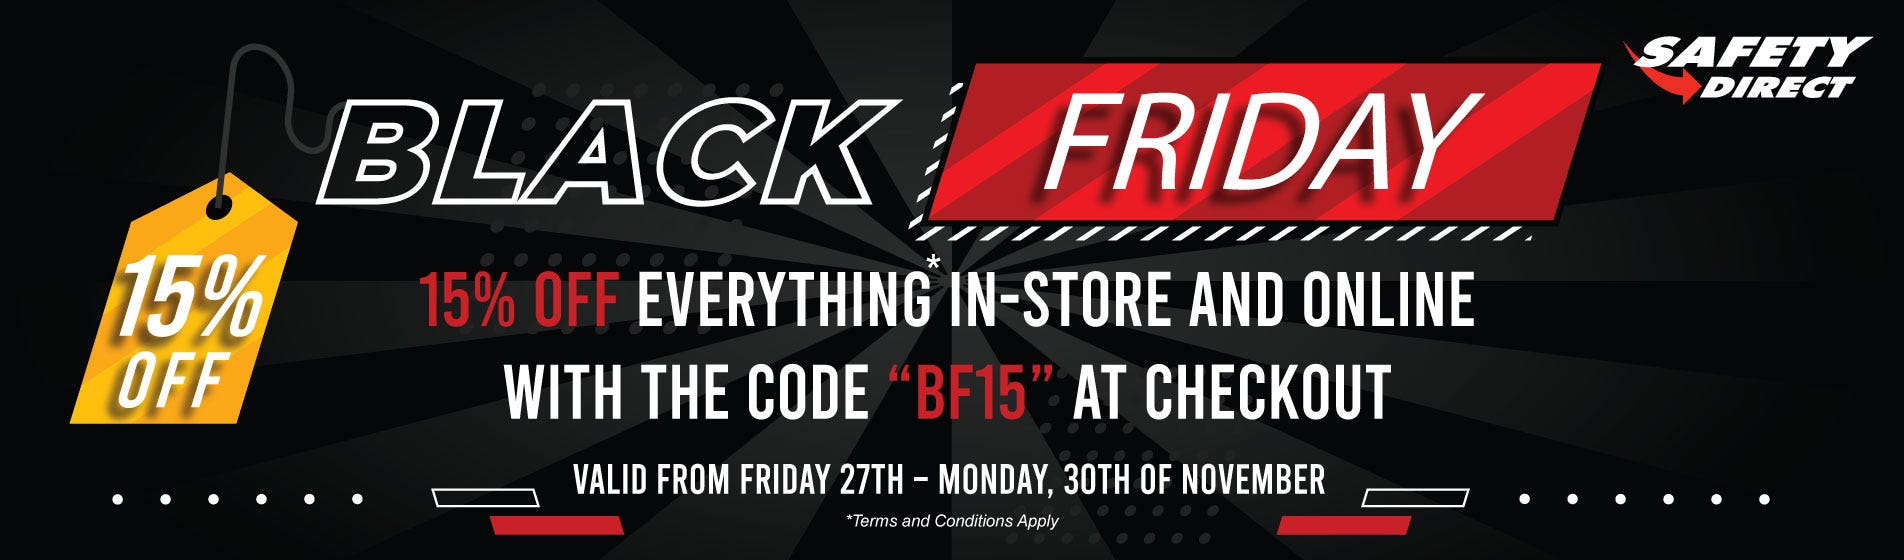 Black Friday at Safety Direct